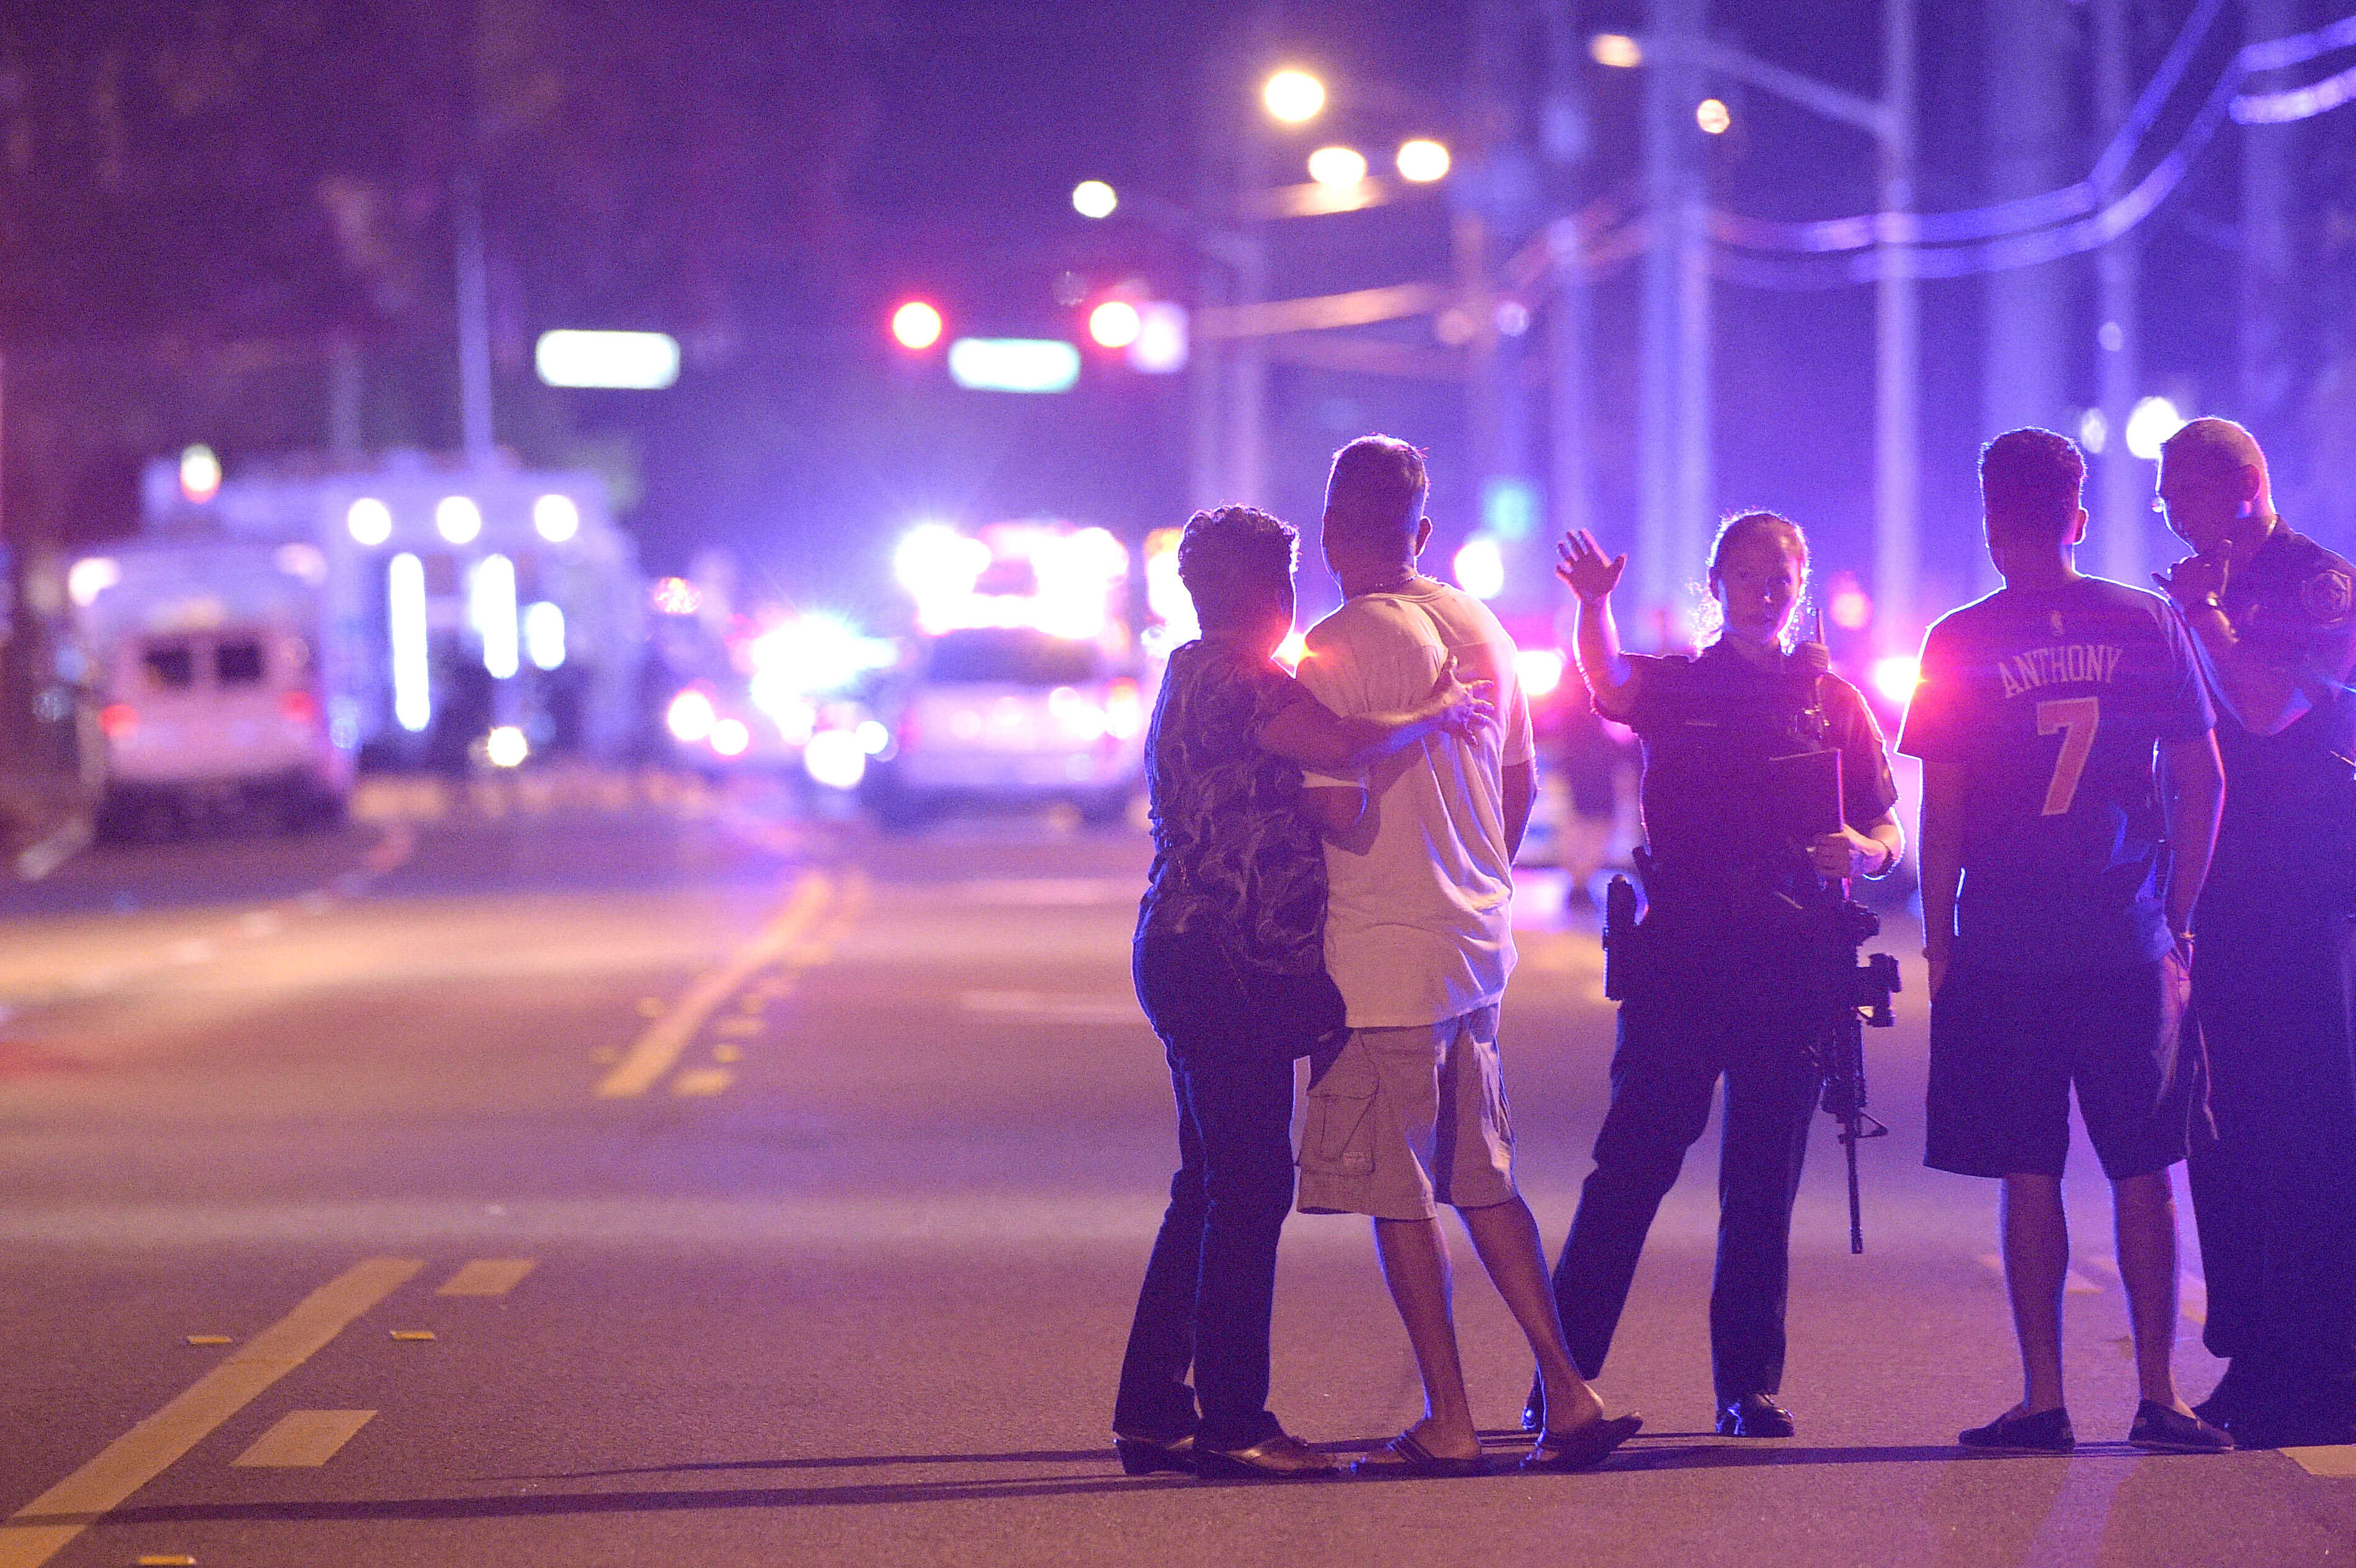 BREAKING: First Photos Of Gunman Released As His Dad Reveals Motive pulse2 2